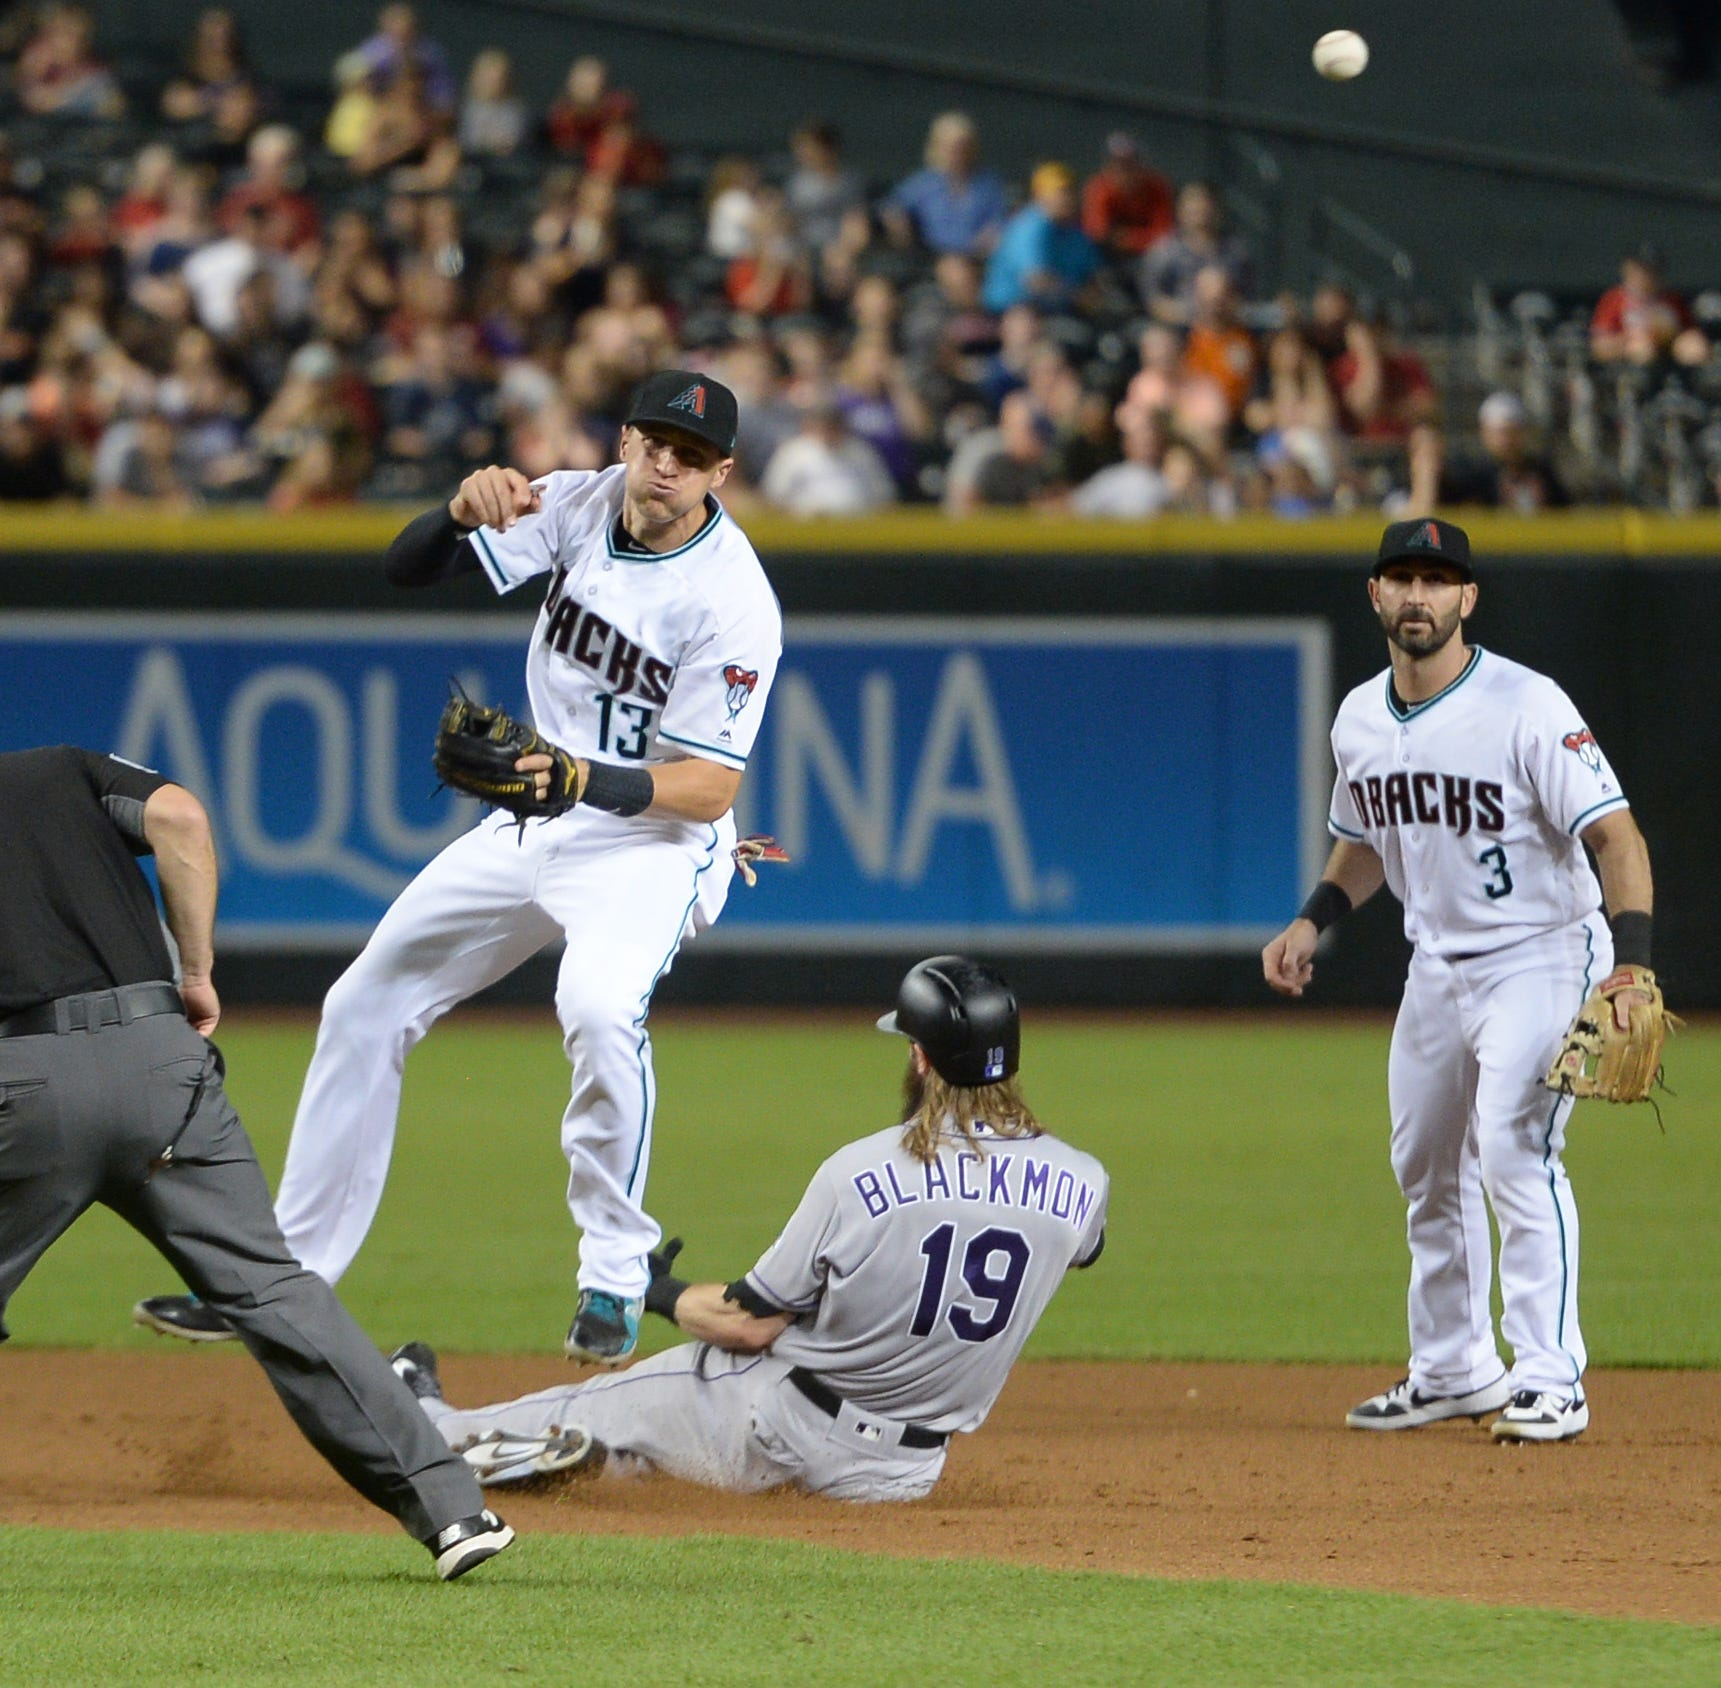 Diamondbacks lose again, Brad Ziegler fumes over Rockies' 'illegal slide'